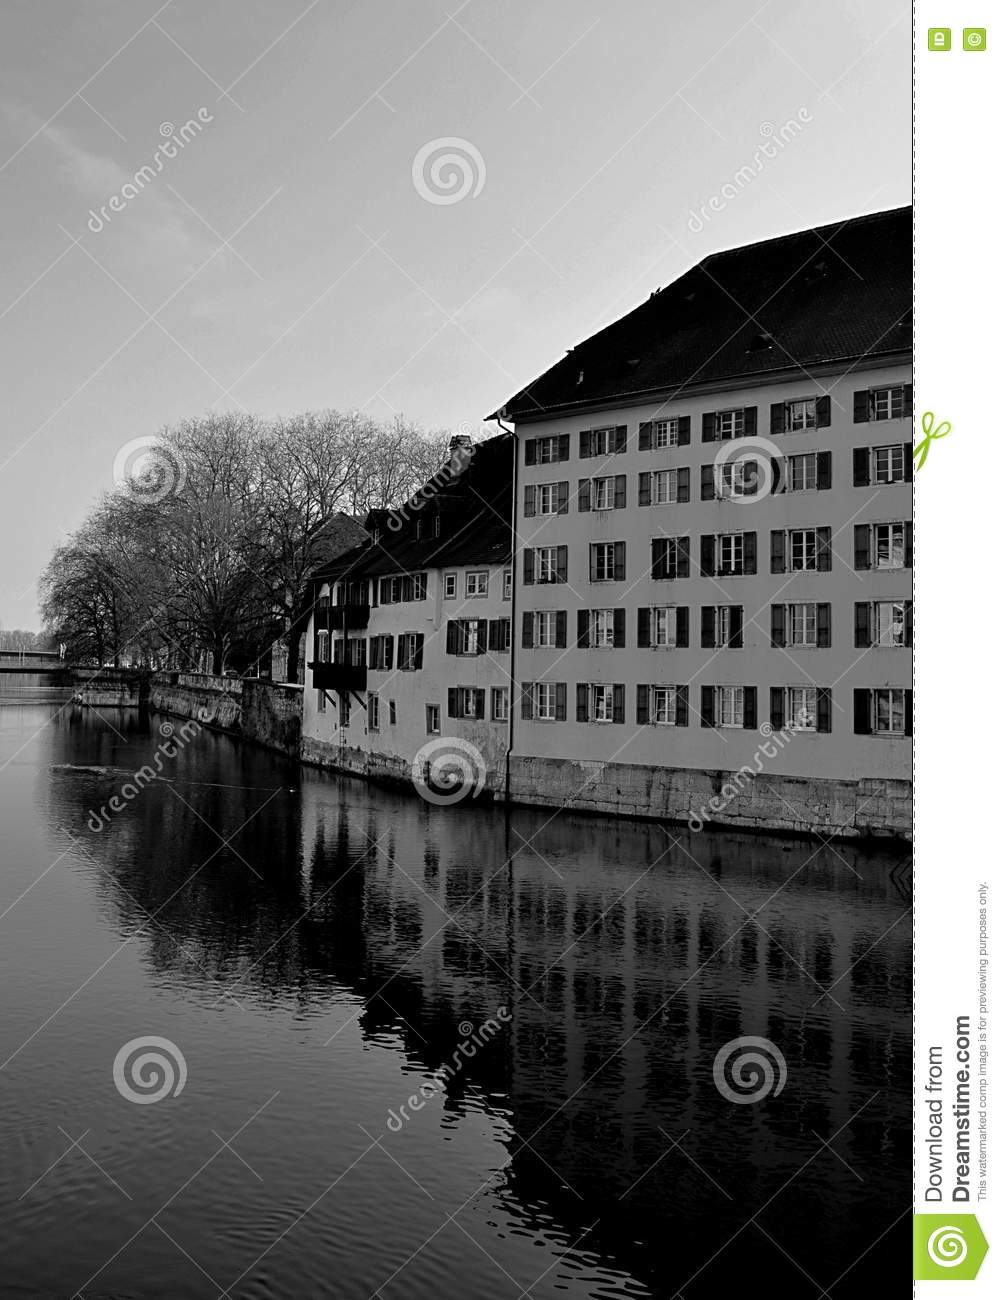 Old buildings reflecting in the river Aare in Solothurn - Switzerland